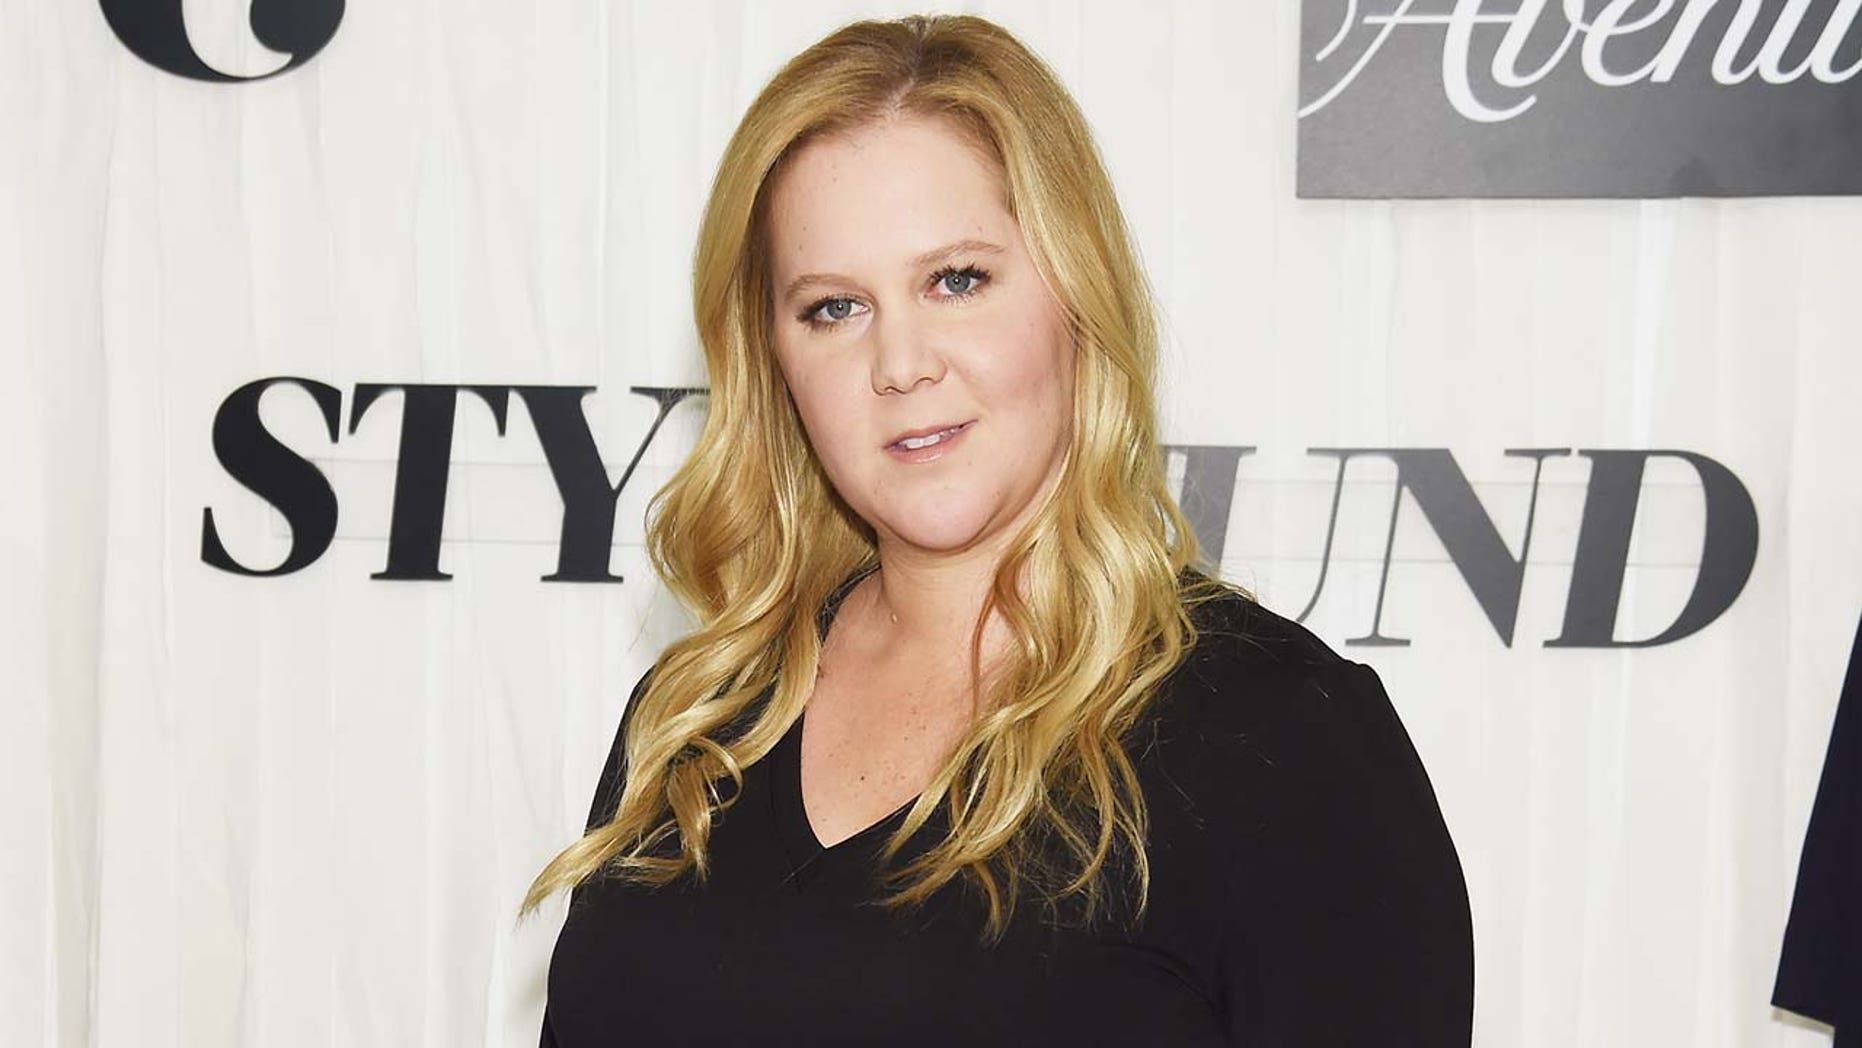 Amy Schumer reveals she had her uterus and appendix removed due to endometriosis